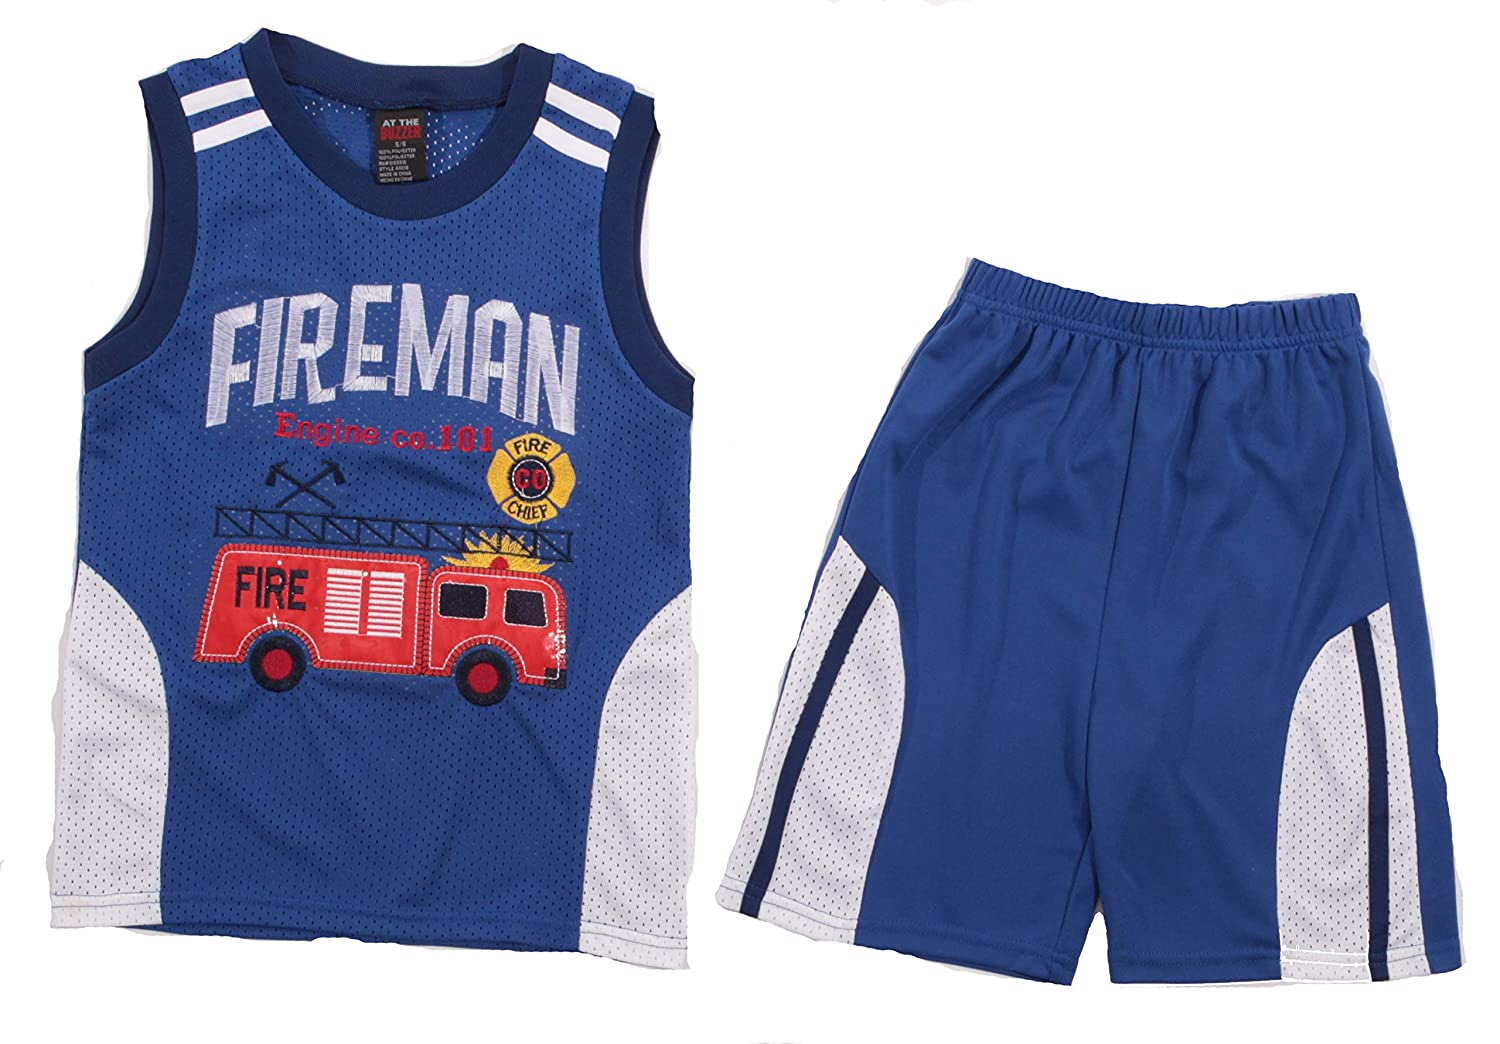 Pack of 2 At The Buzzer Two Piece Short Set